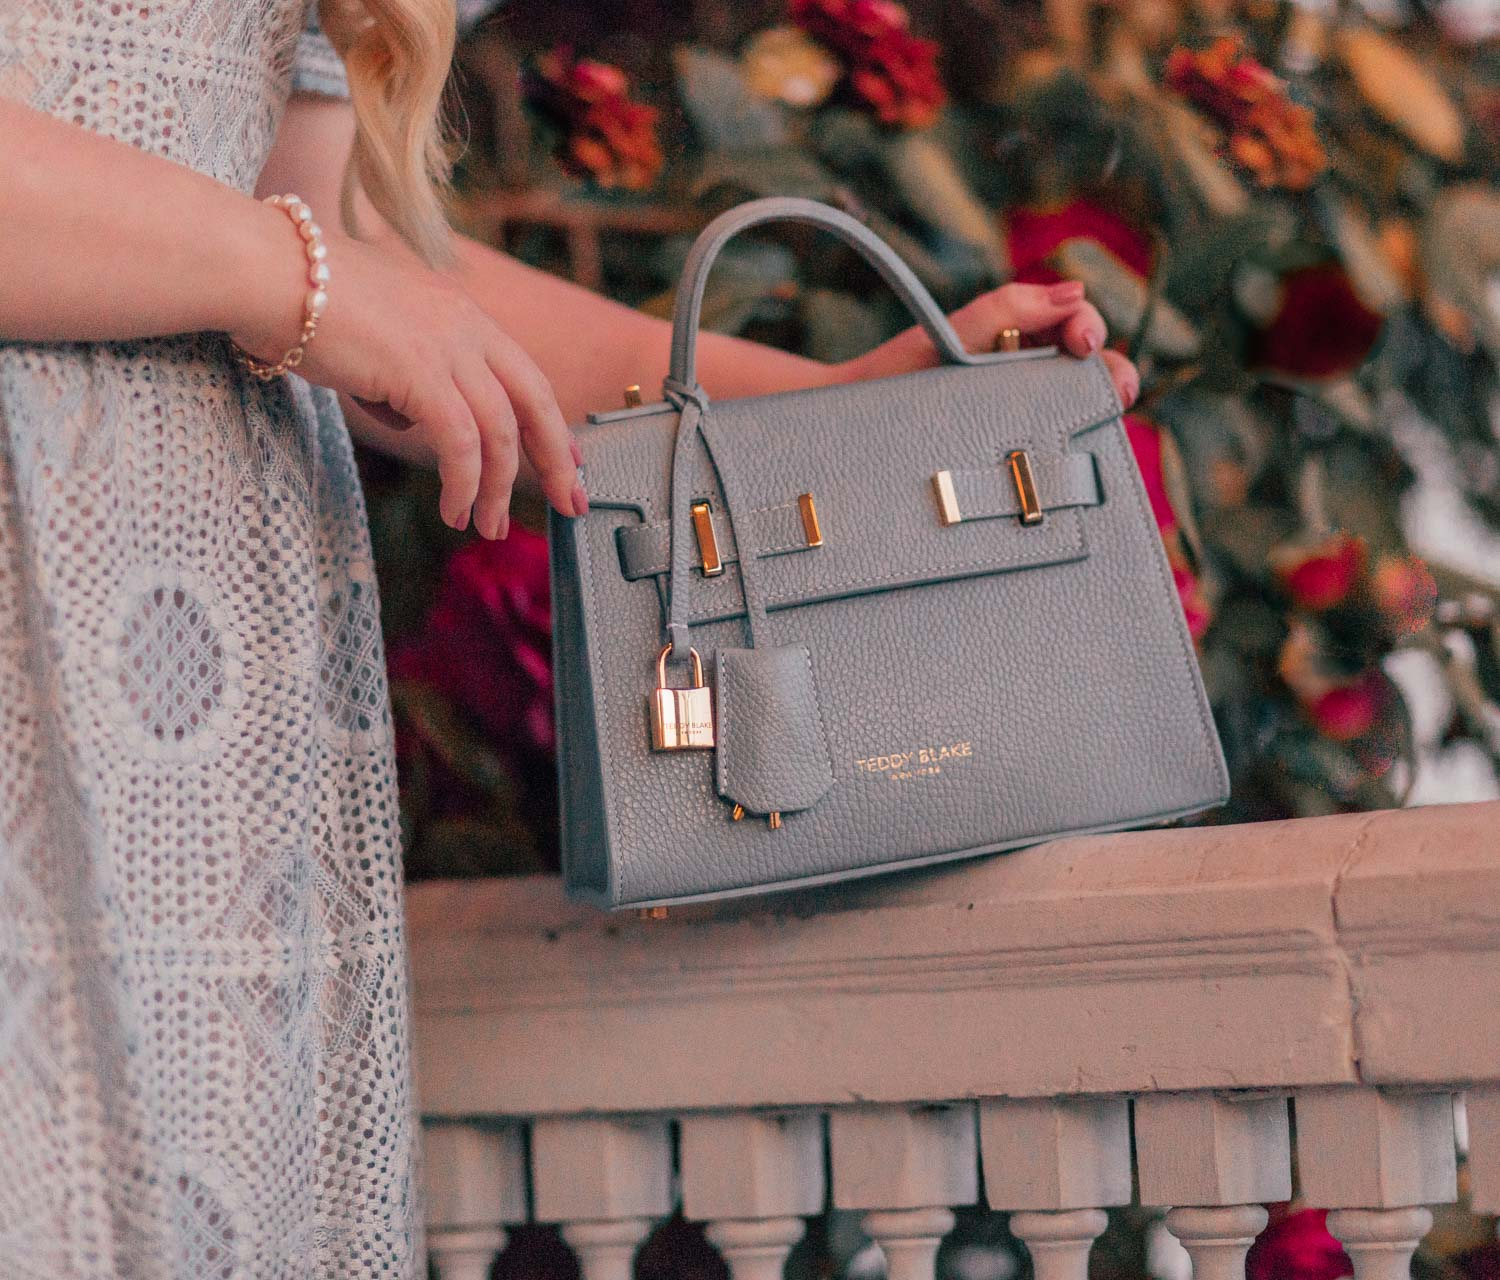 Girly Fashion Blogger Elizabeth Hugen of Lizzie in Lace shares a Feminine Cottagecore Outfit Idea for Spring including this Teddy Blake Ava Bag